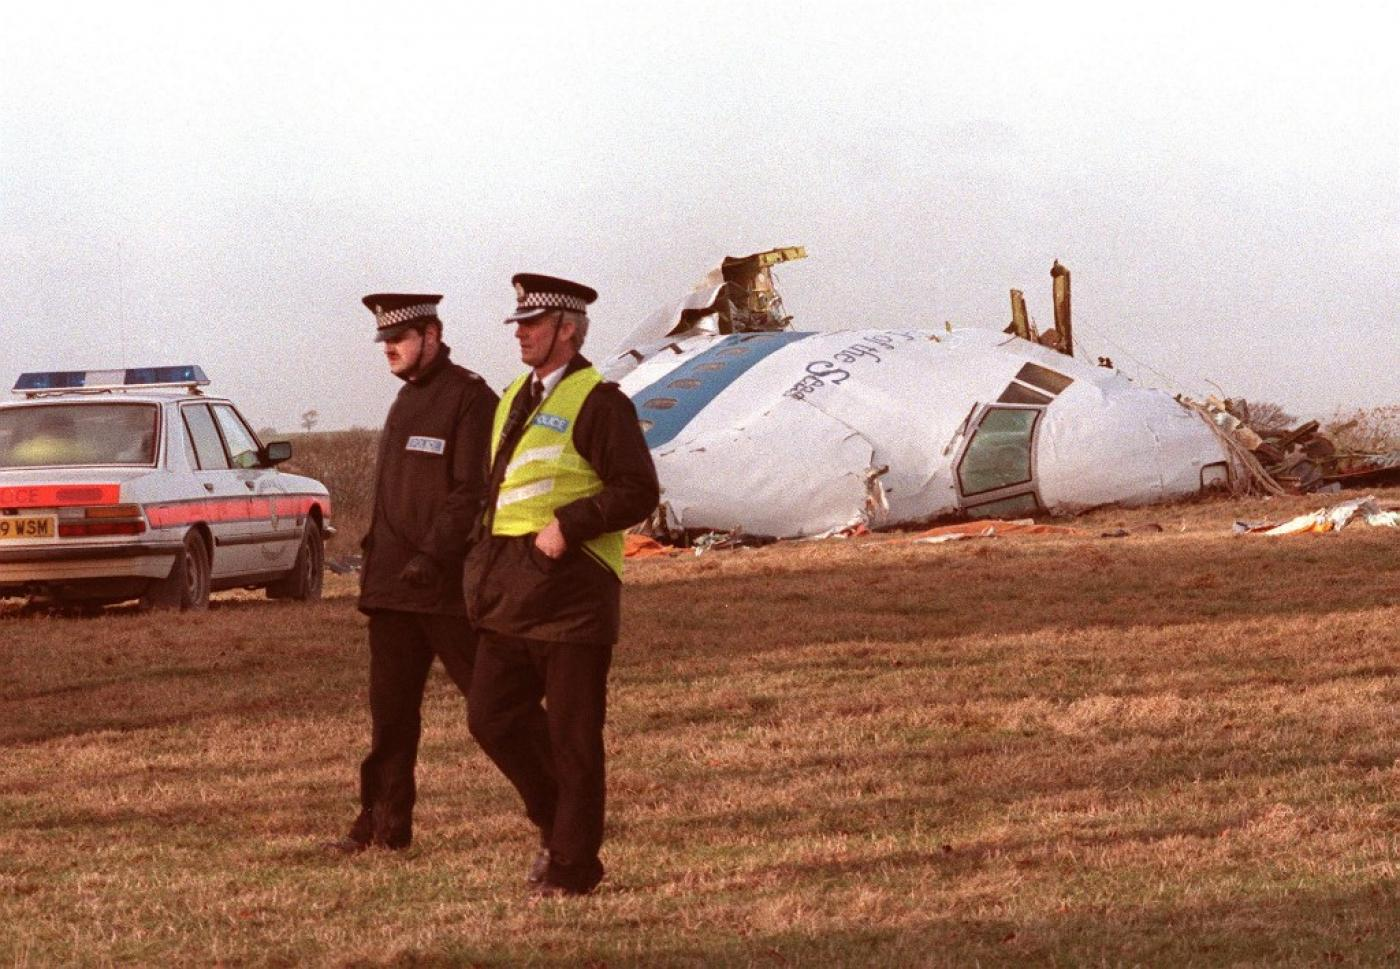 Lockerbie bomber's family to appeal conviction in UK's top court